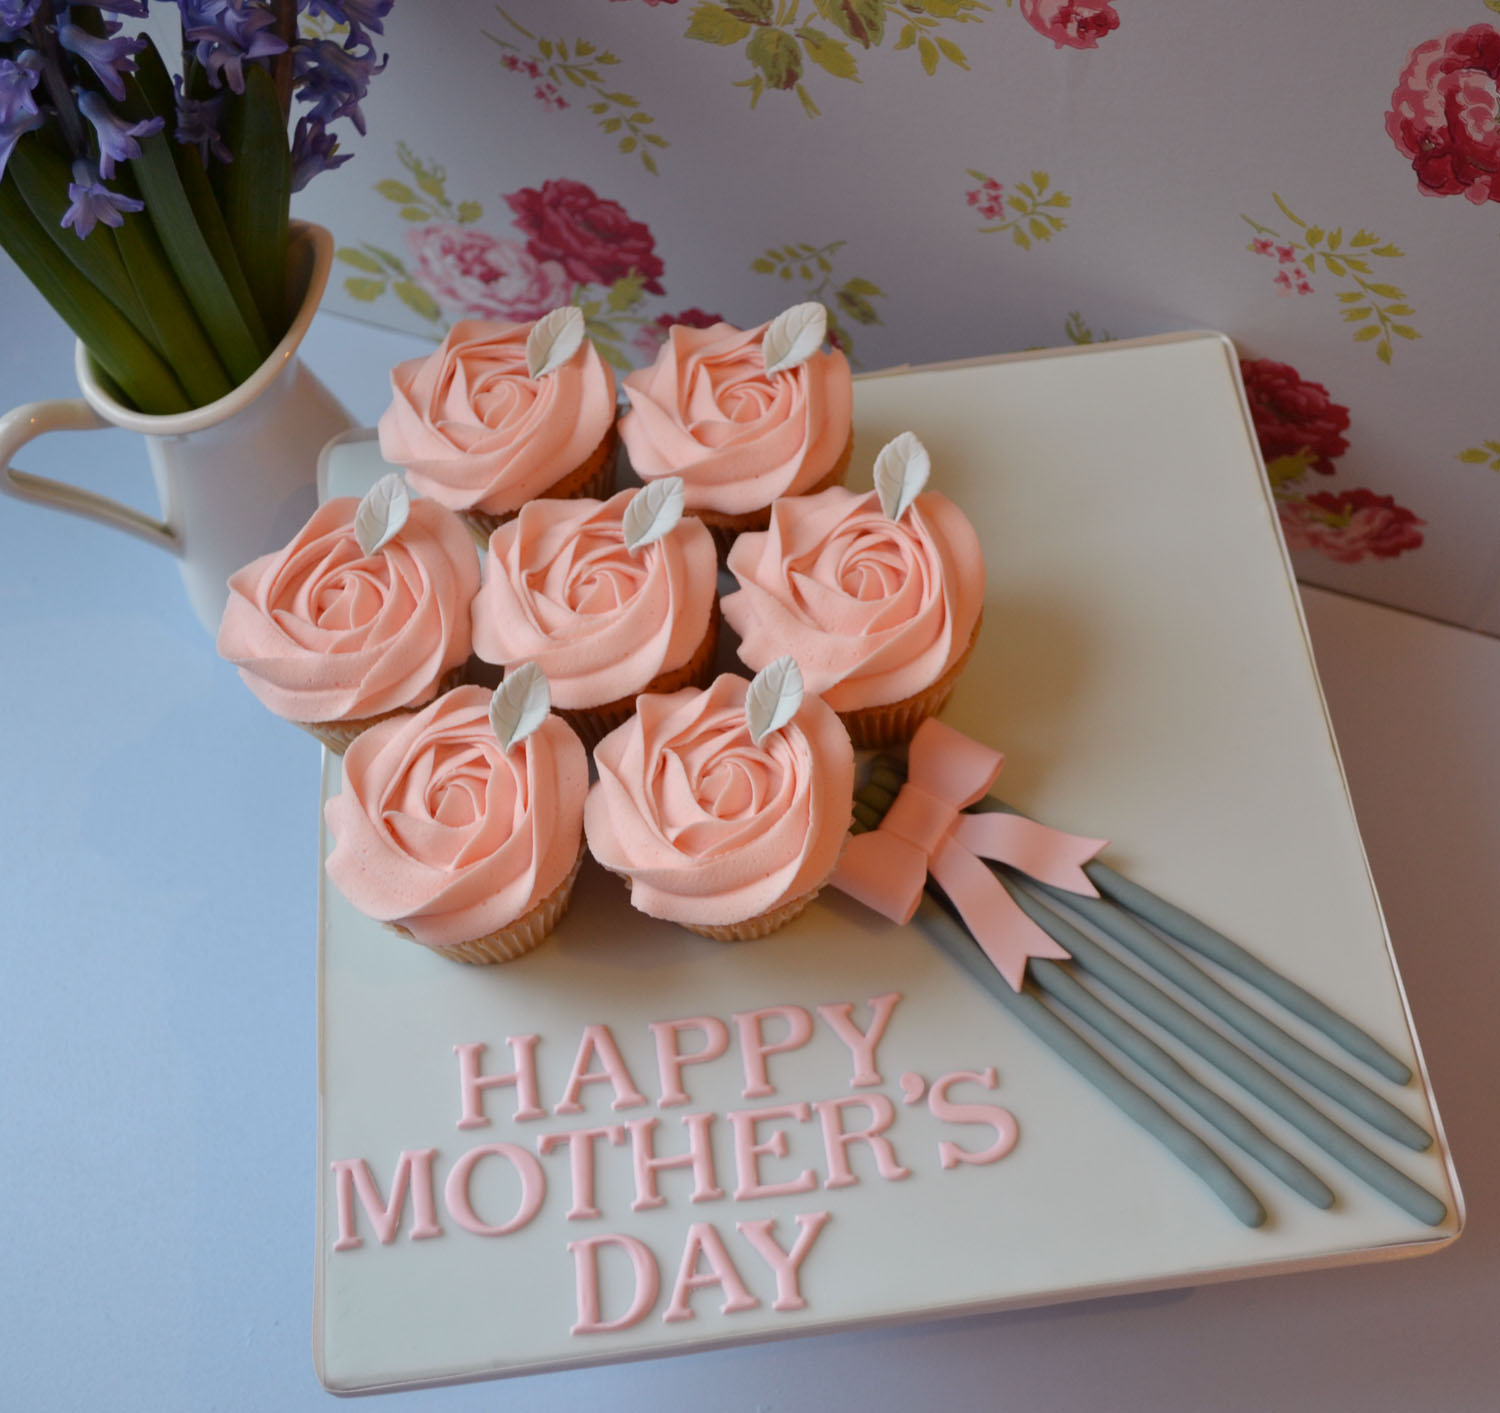 Little Paper Cakes: Mother's Day Cupcakes